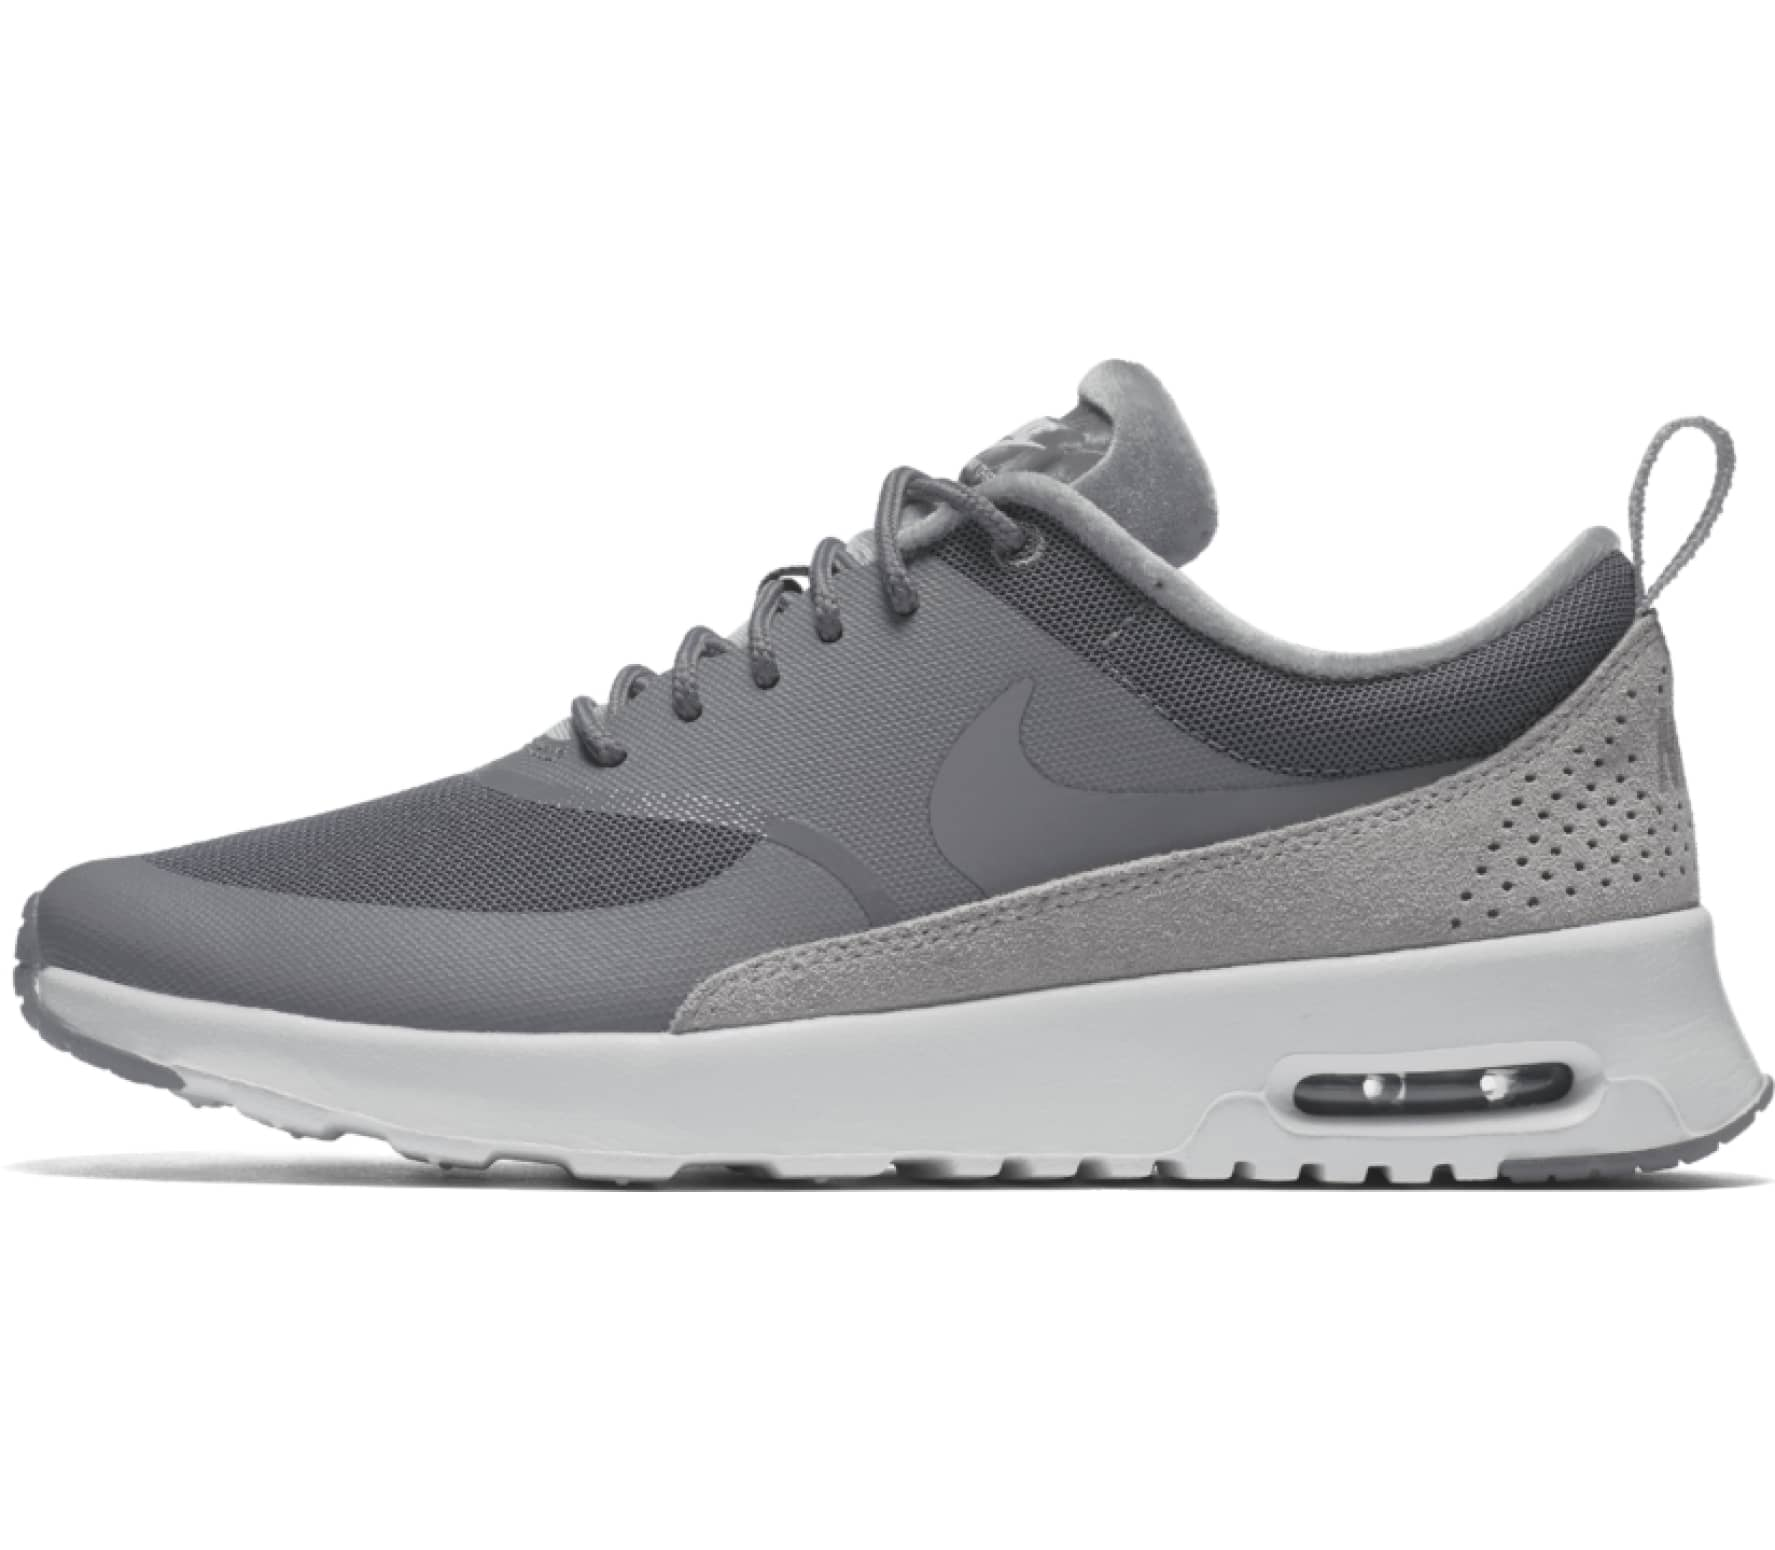 new style 18595 56c49 Nike - Air Max Thea LX womens sneaker (grey)